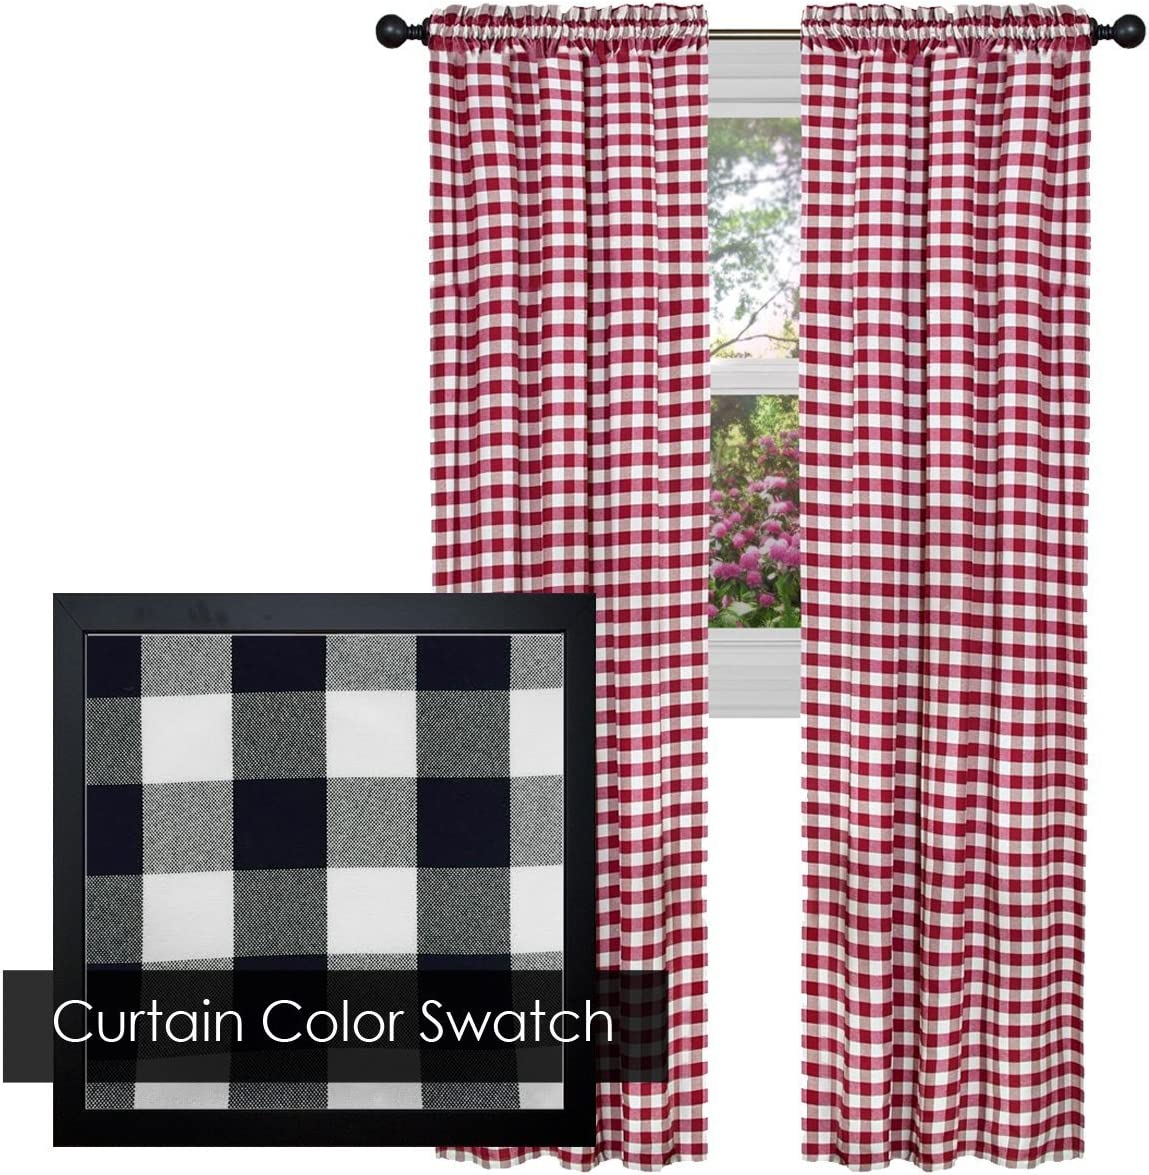 ArtOFabric Checkered Polyester Gingham Curtain Panel Set of 2 Black 58 X 120 Inch